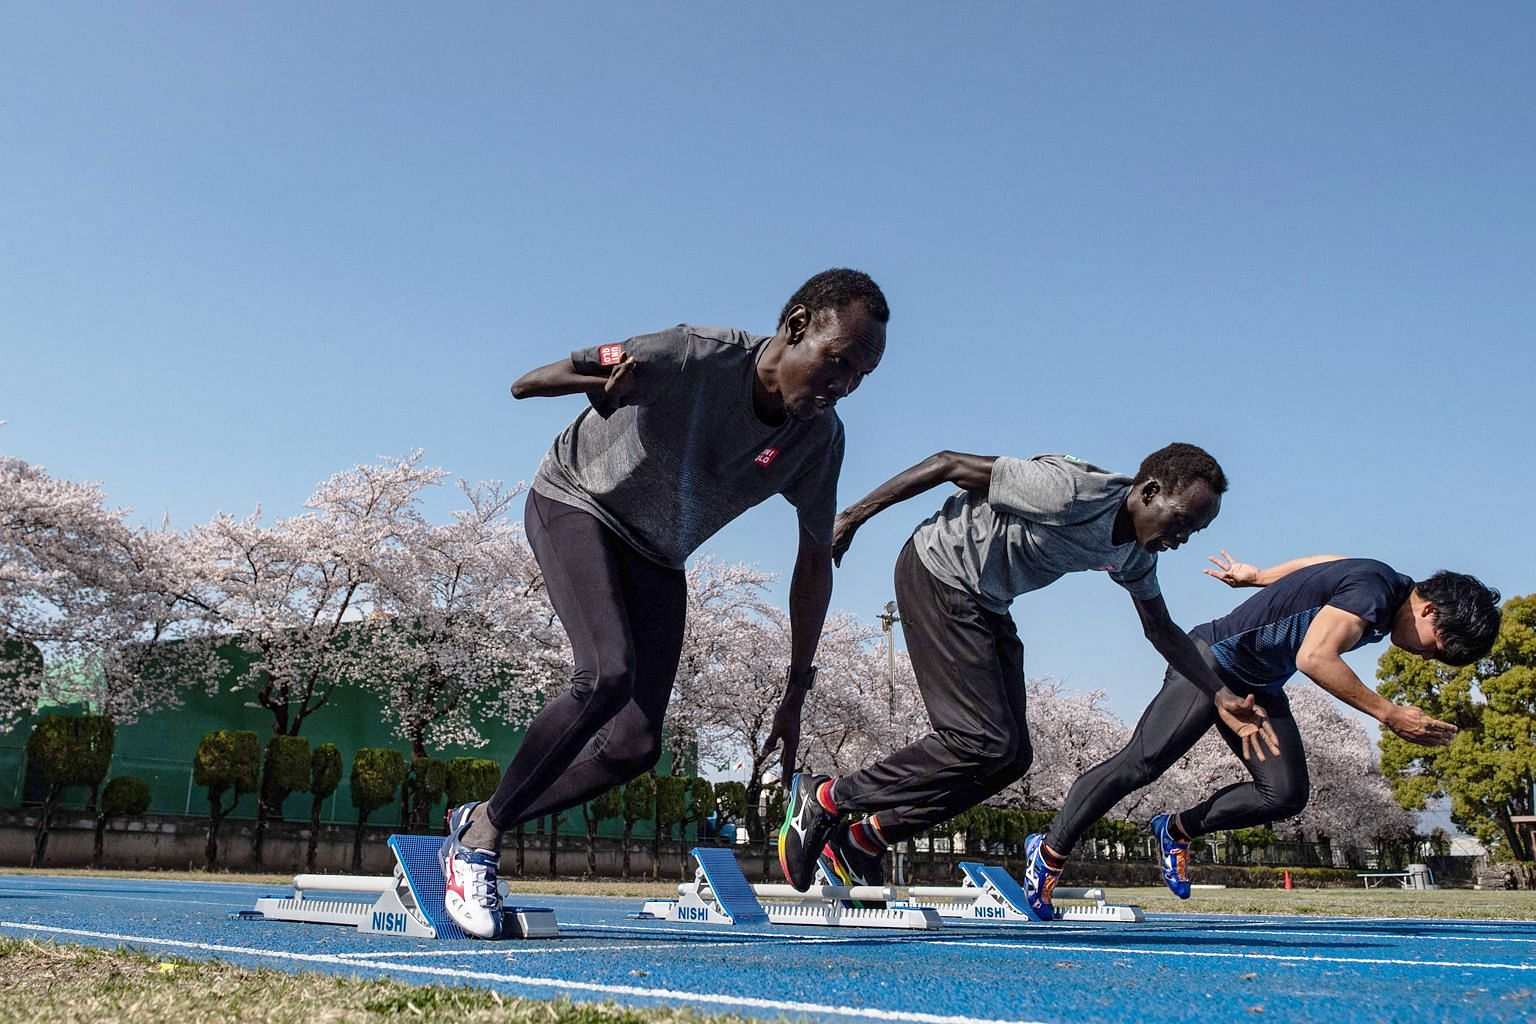 South Sudan para athlete Michael Machiek Ting Kutjang (far left) training in Maebashi, north of Tokyo, for the 2020 Paralympics, which have been postponed to next year. He is among a small team hosted by the city since November as part of its efforts